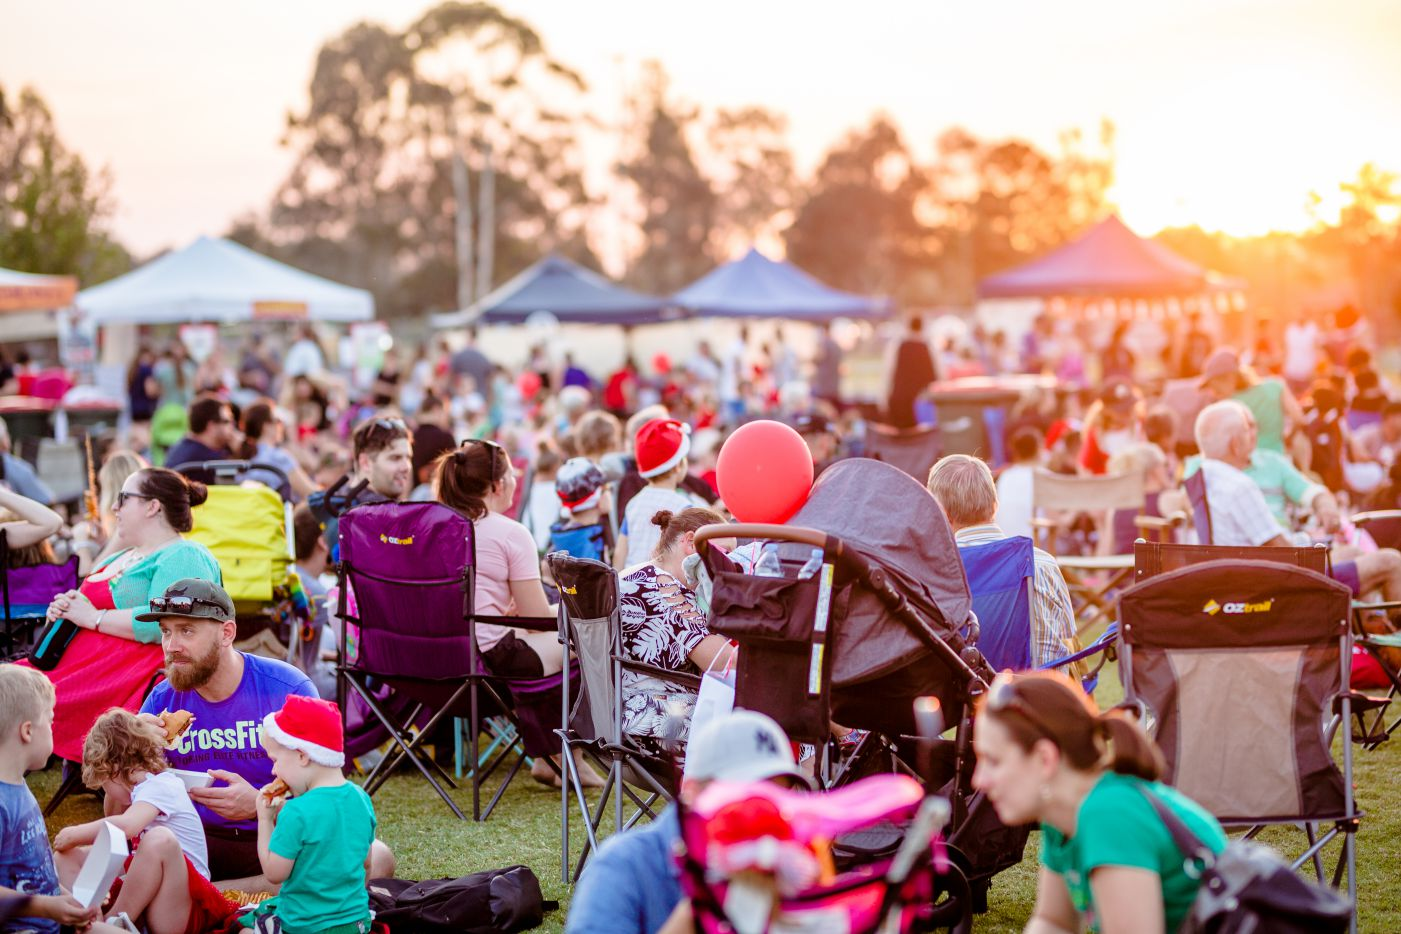 A group of people getting ready for fireworks at the Burpengary Christmas Spectacular.